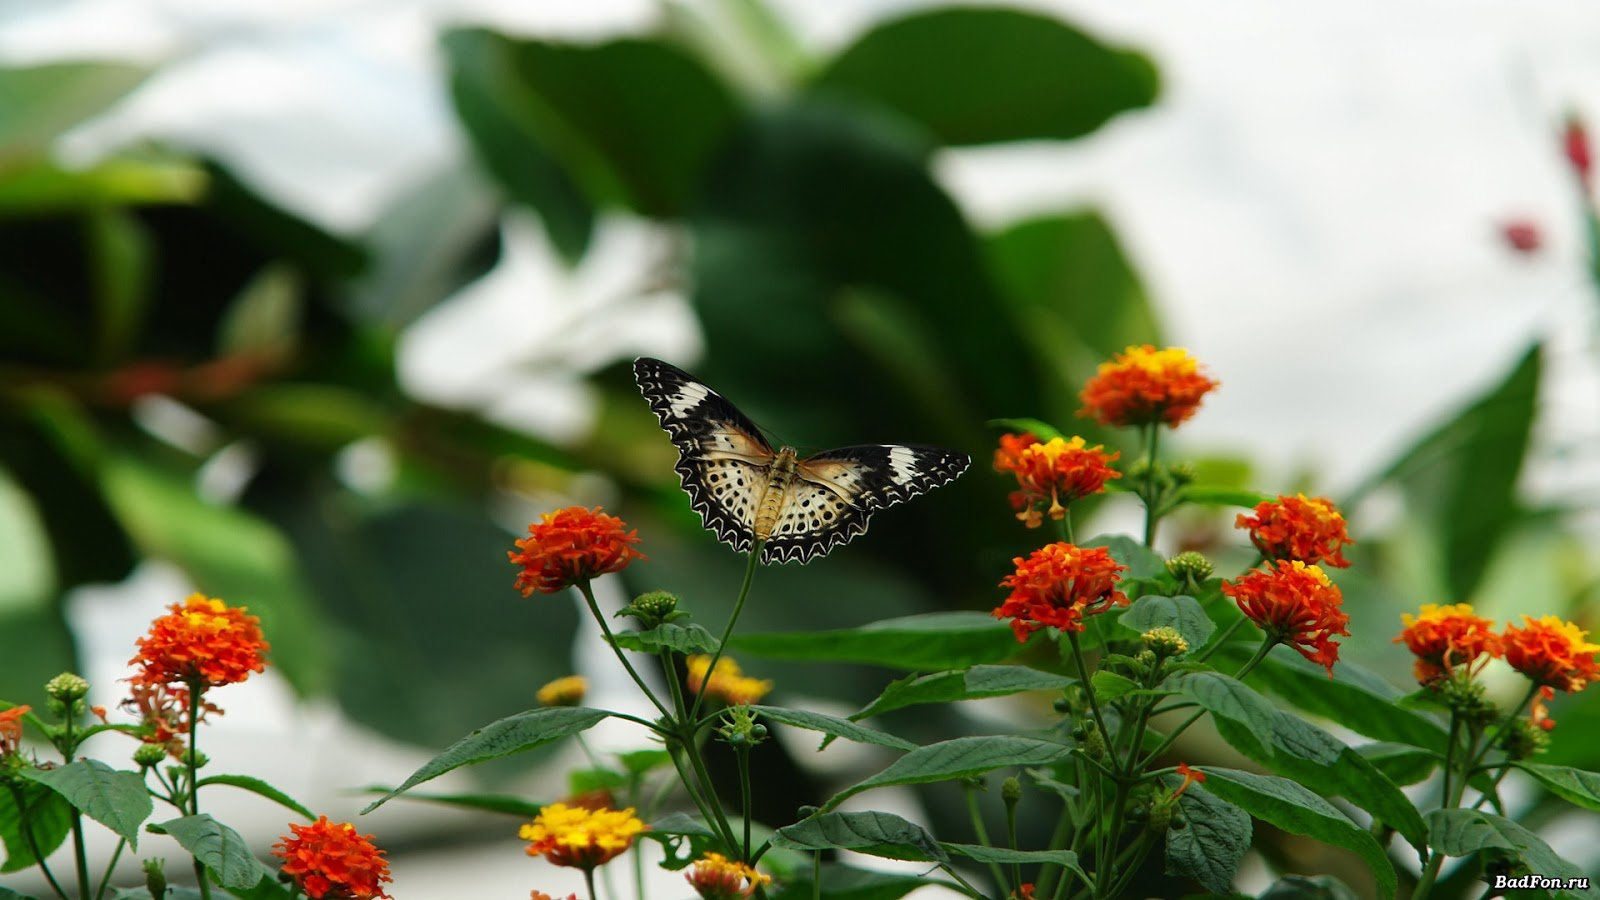 Butterfly pictures with flowers